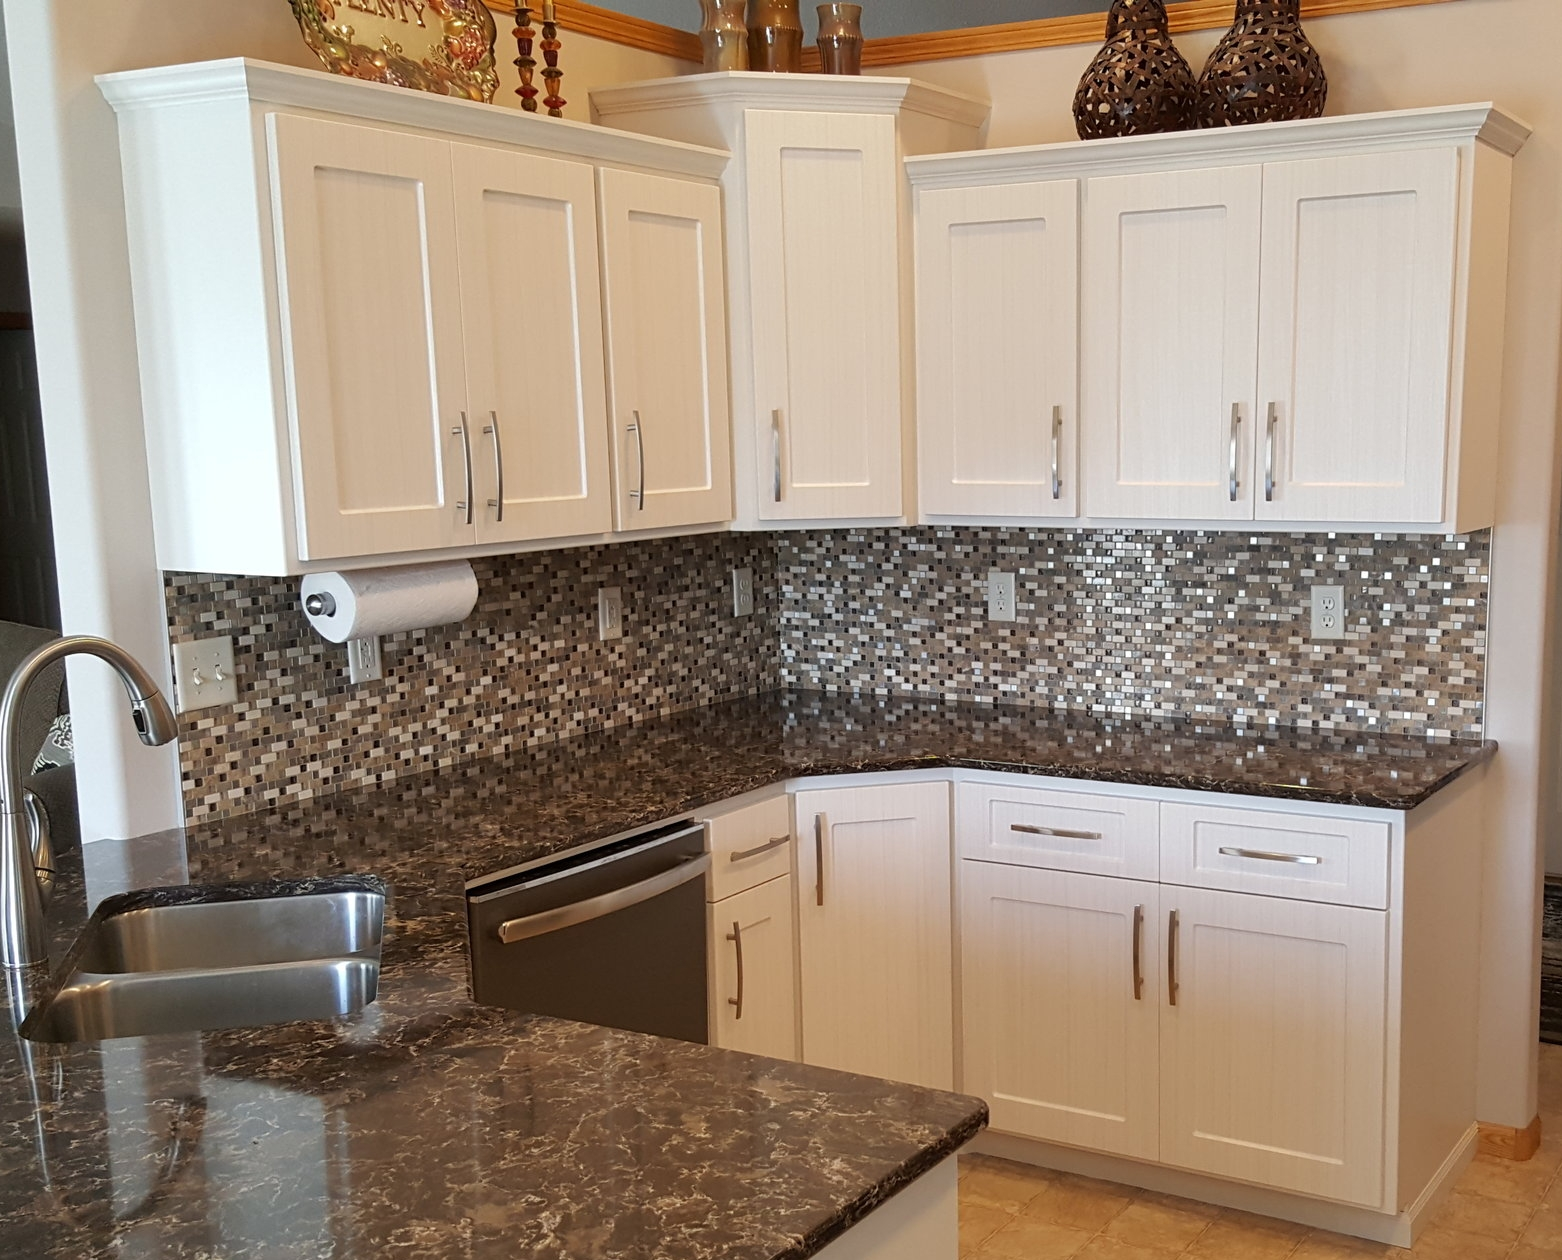 We are still amazed this is our kitchen - Sarah P., Fargo, N.D.We could not be happier with our updated kitchen! We are still amazed that this is our kitchen! Kitchen Refresh was attentive and responsive throughout the entire process. We would wholeheartedly recommend Kitchen Refresh to anyone wishing to modernize their kitchen.